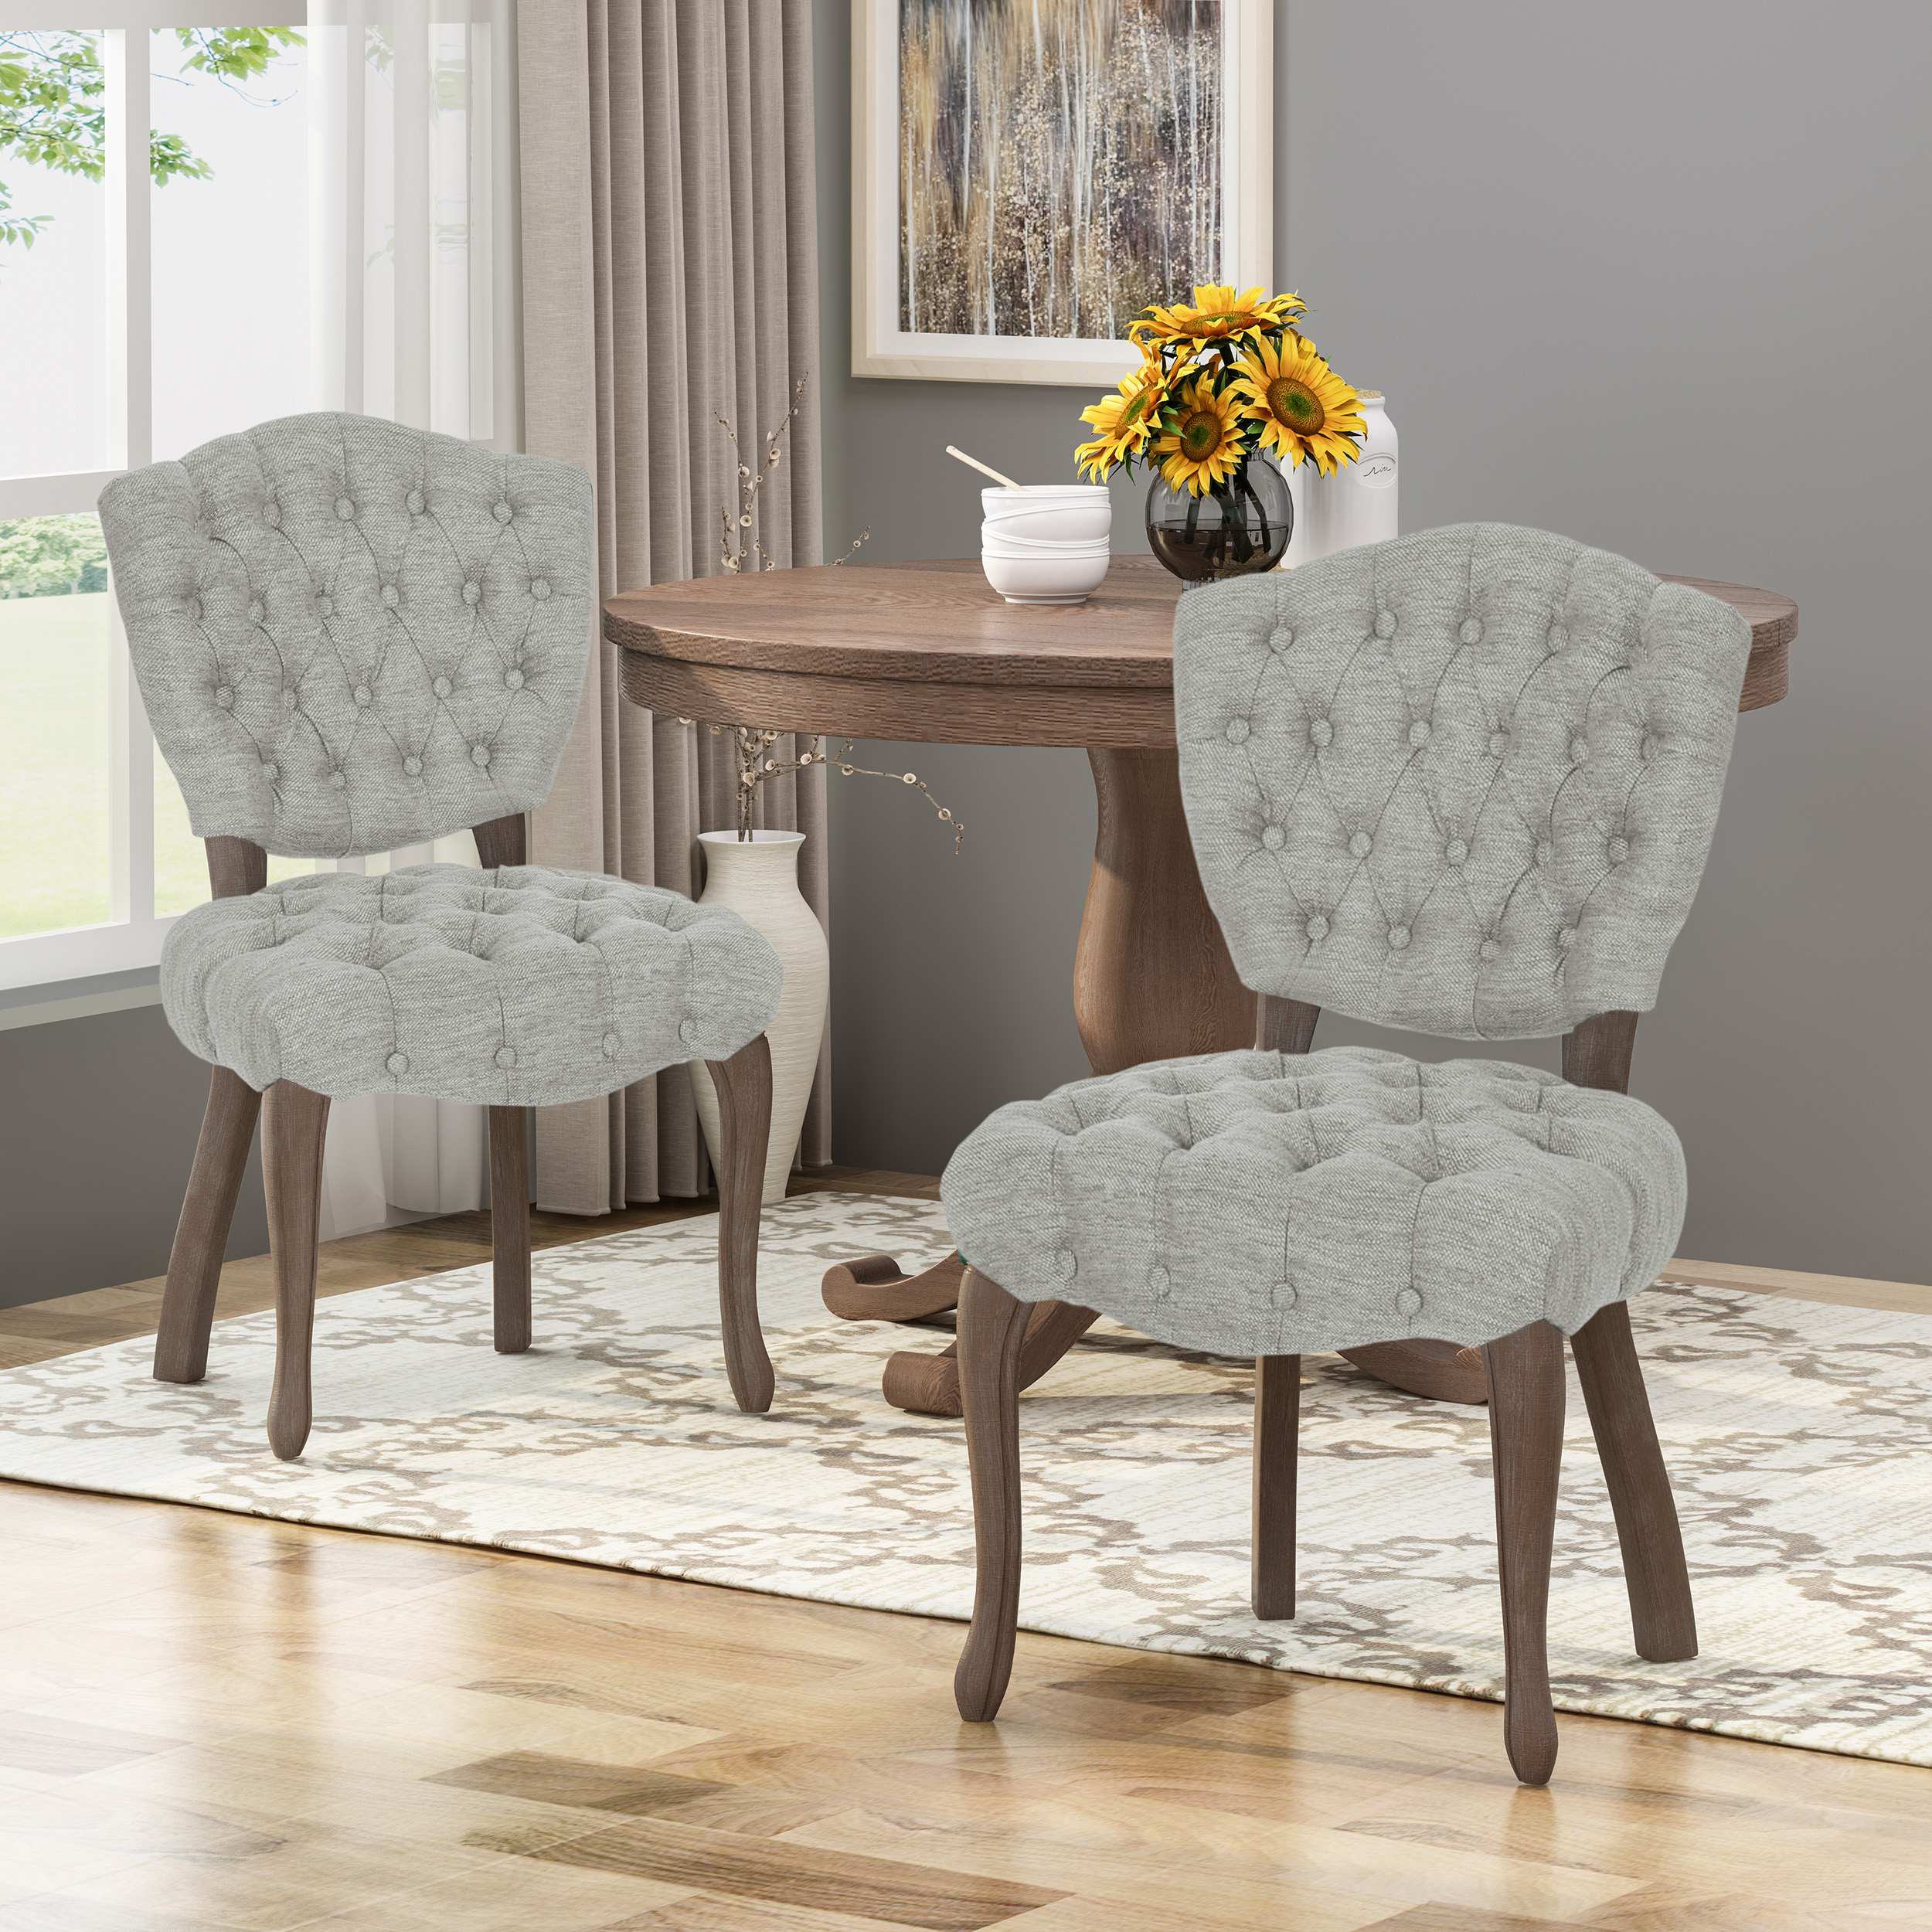 Case Tufted Dining Chair With Cabriole Legs Set Of 2 Light Gray And Brown Wash Finish Walmart Com Walmart Com